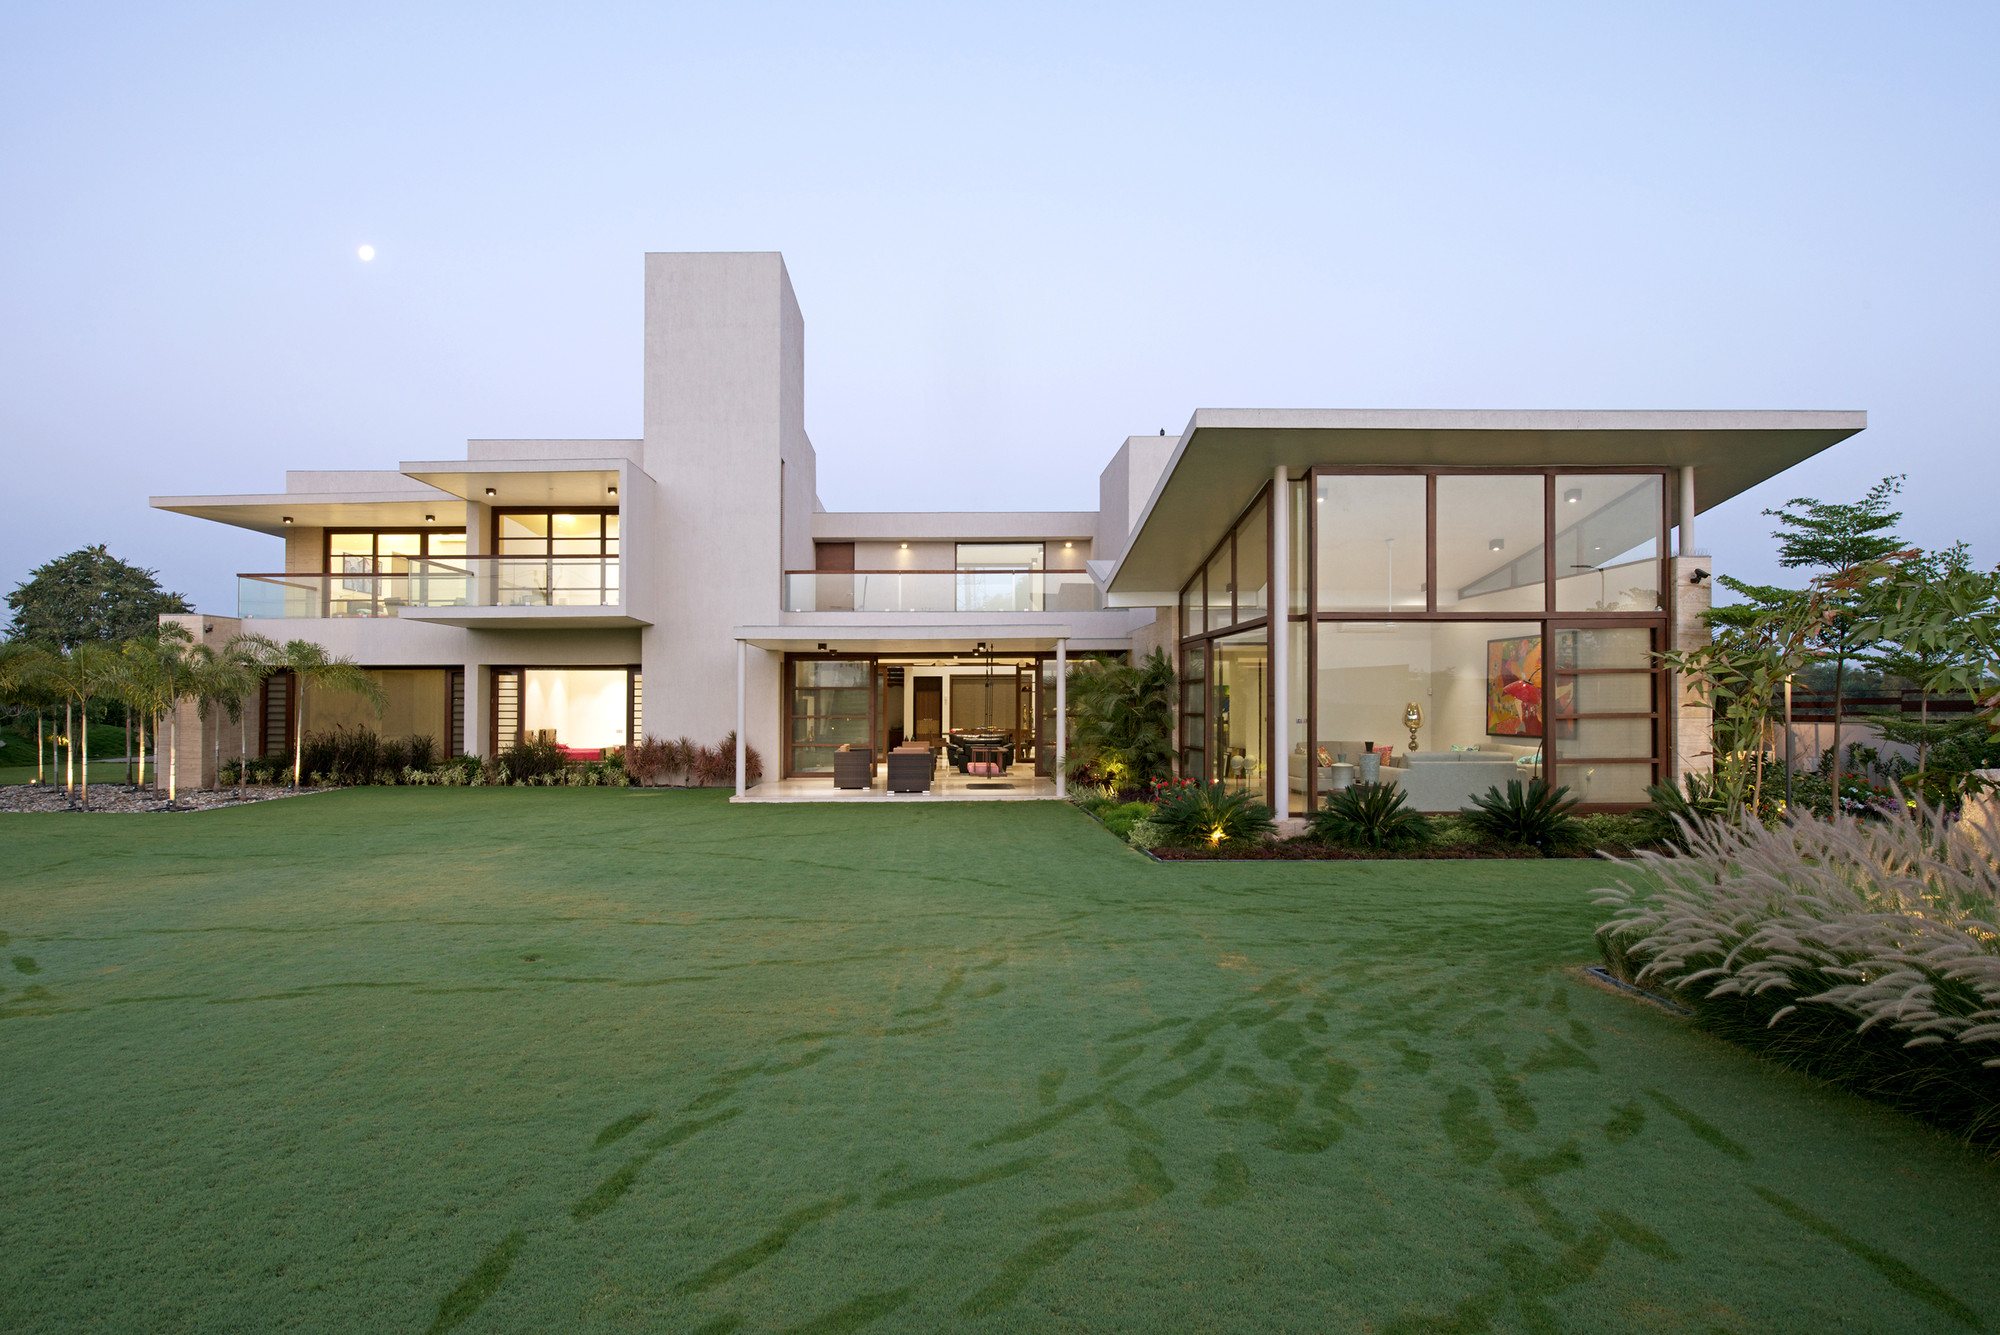 The Urbane House / Hiren Patel Architects, © Sebastian Zachariah